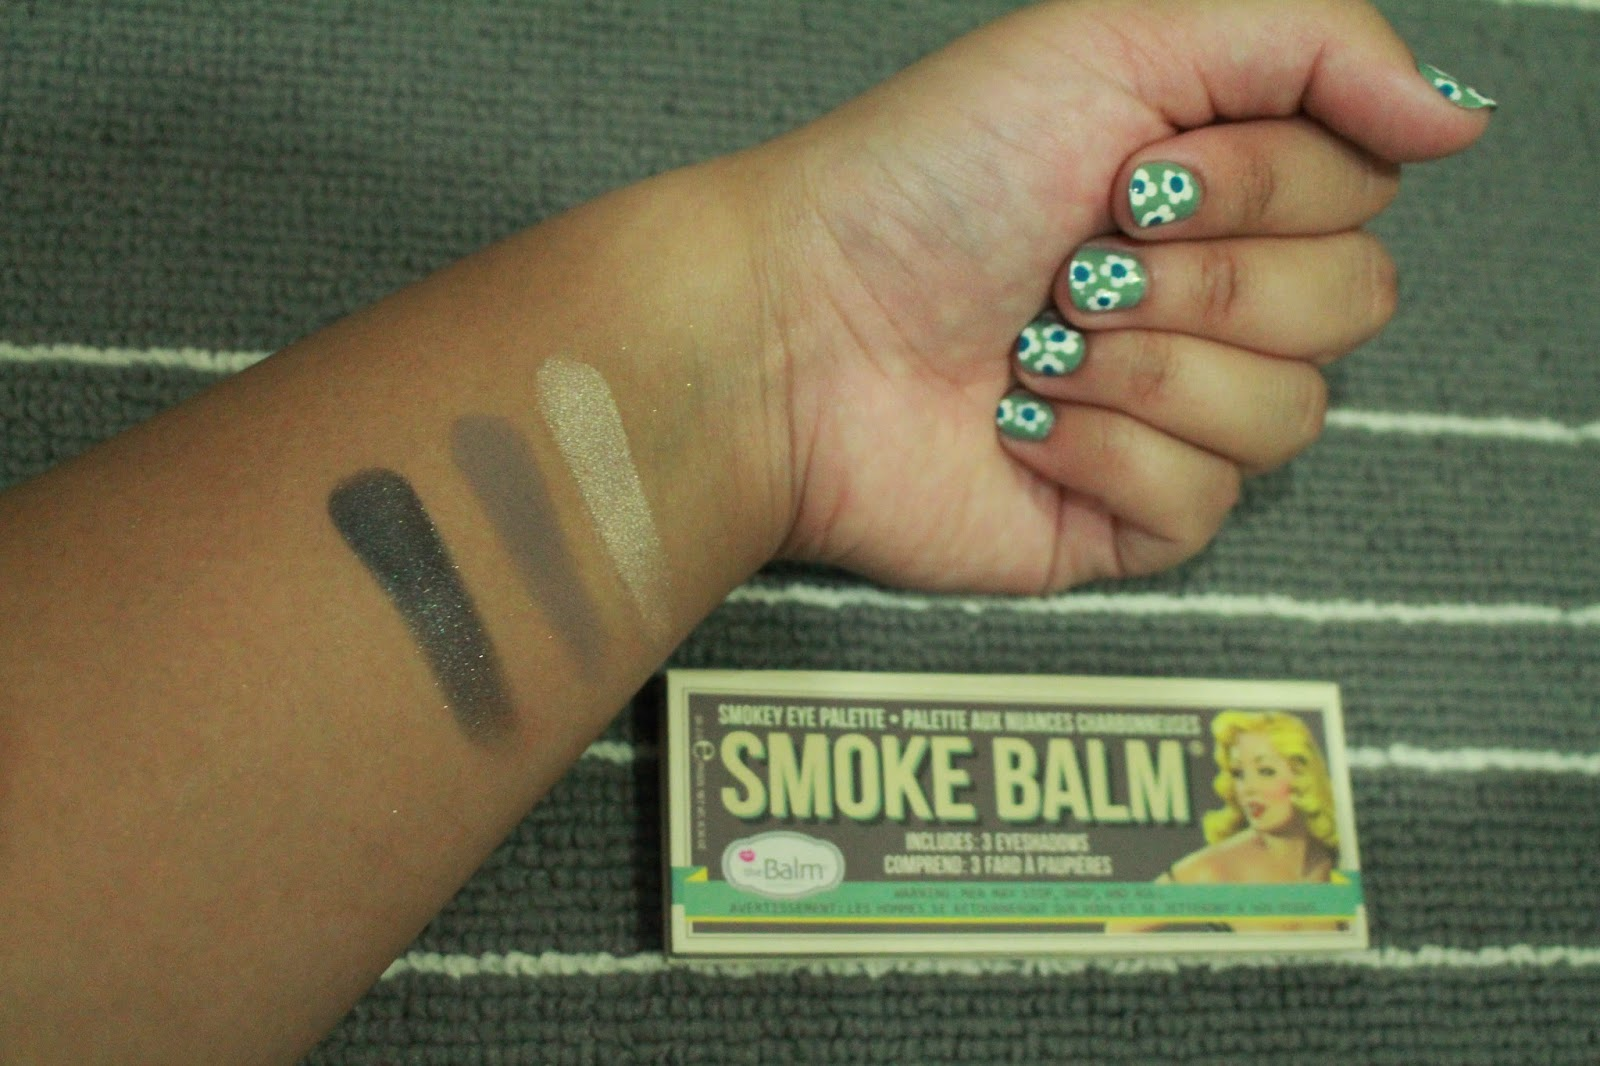 The Balm Smoke Balm Volume 1 Palette Swatch